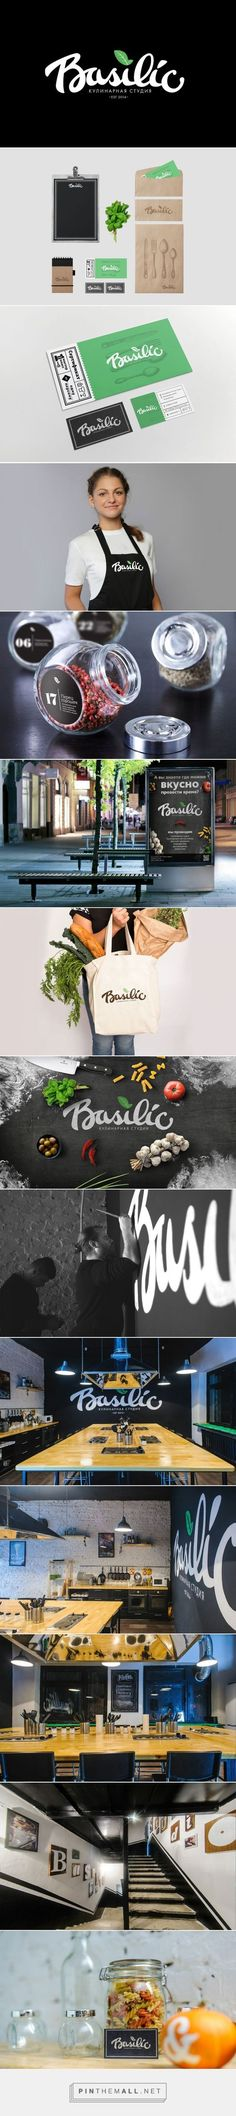 Identity / food / restaurant / Basilic Branding by Stepan Solodkov Fivestar Branding – Design and Branding Agency & Inspiration Gallery Restaurant Branding, Food Branding, Branding Agency, Logo Food, Restaurant Design, Restaurant Marketing, Branding Ideas, Identity Branding, Coperate Design